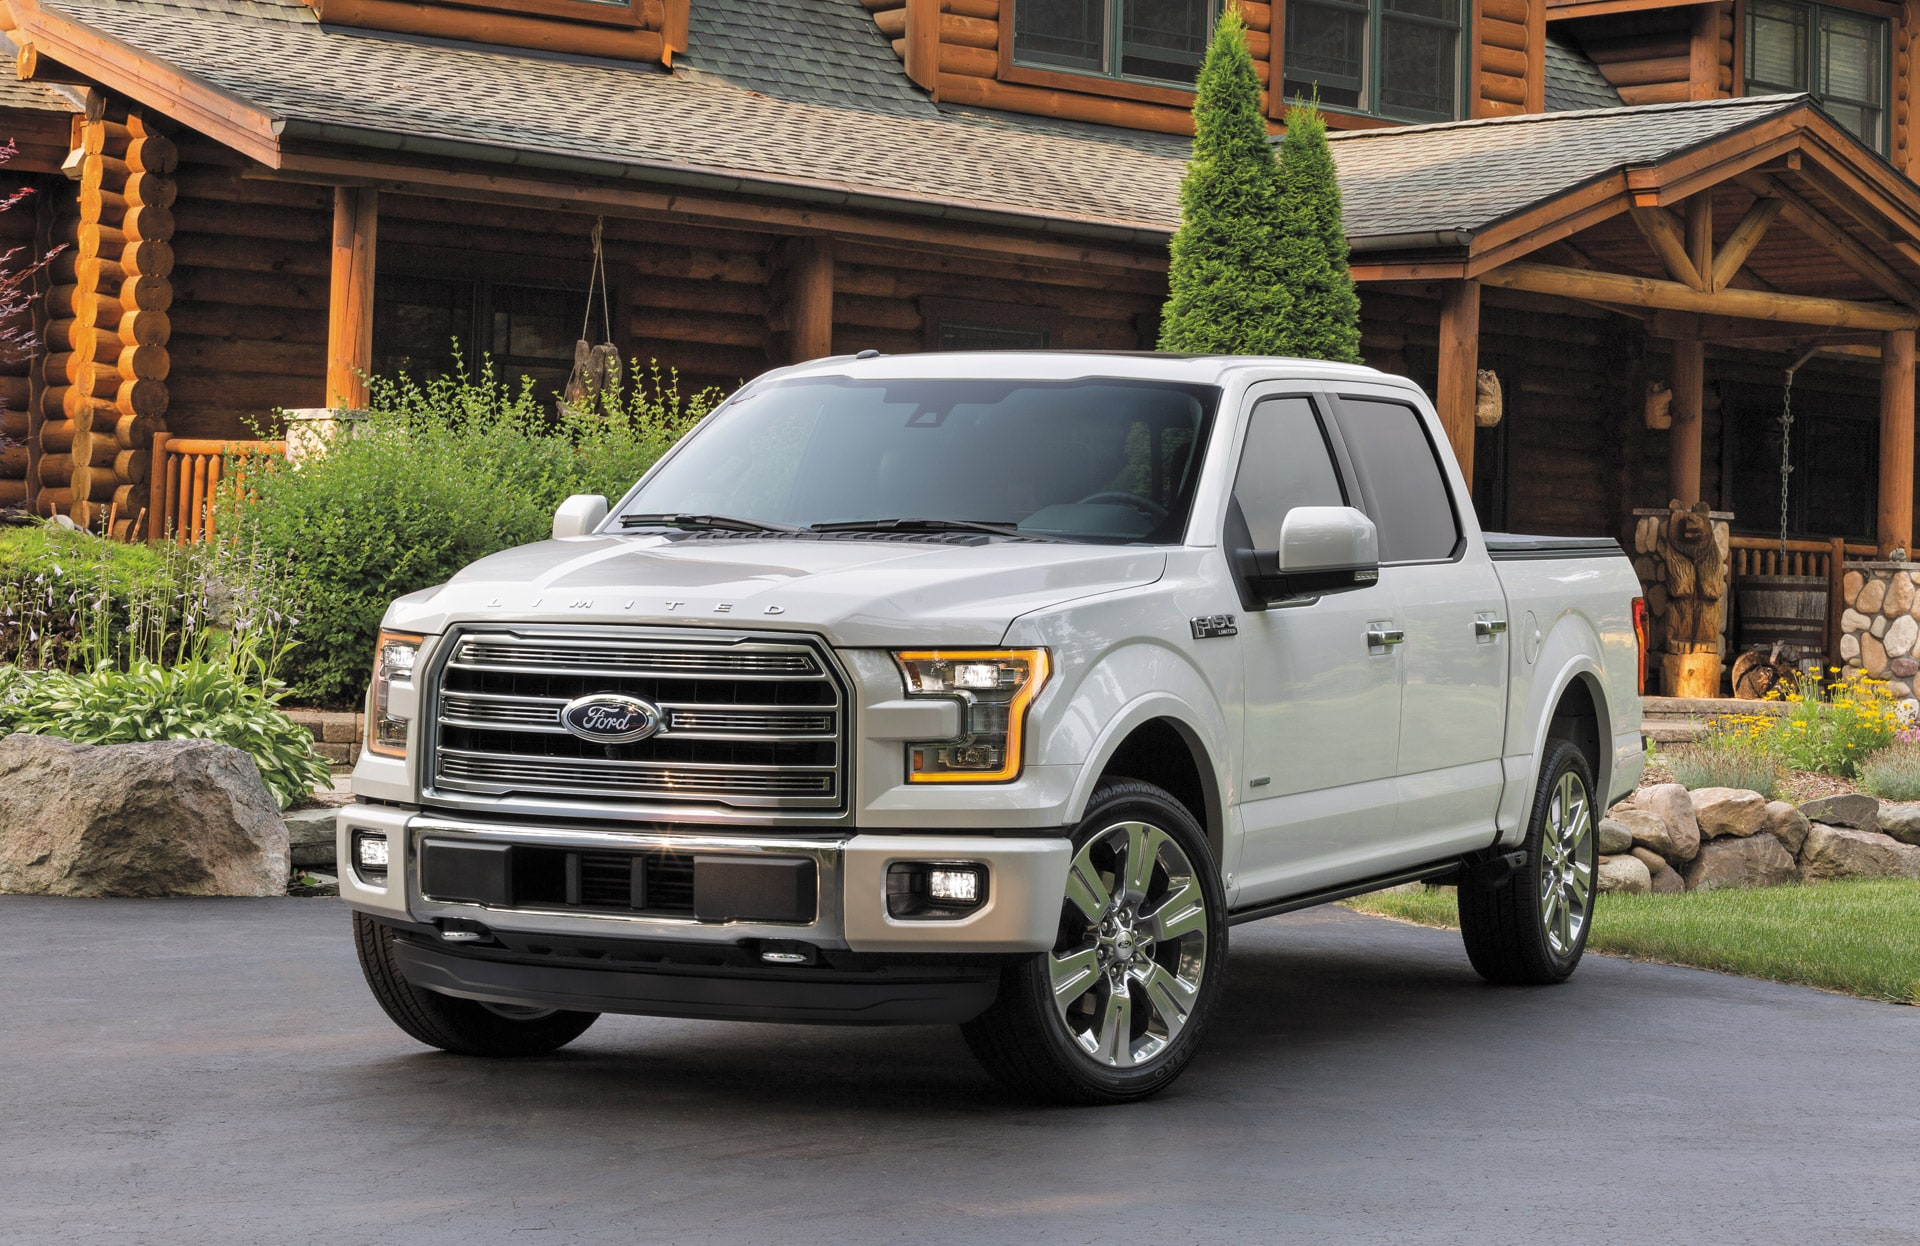 Ford F-150 HQ wallpapers